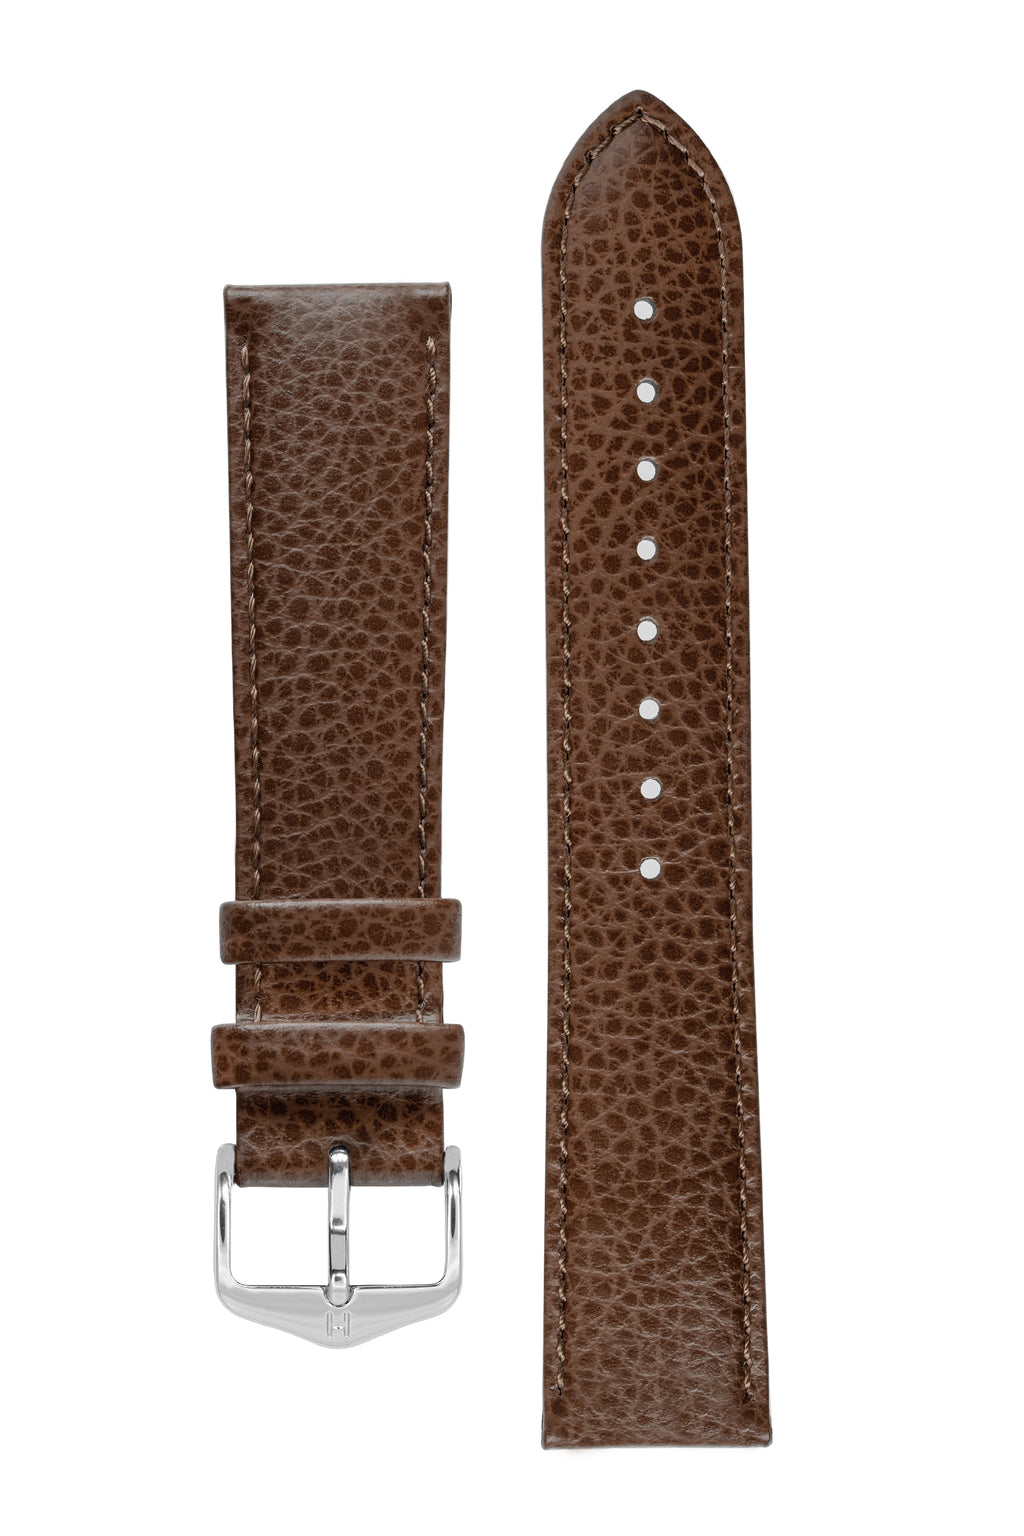 Hirsch KANSAS Buffalo-Embossed Calf Leather Watch Strap in BROWN